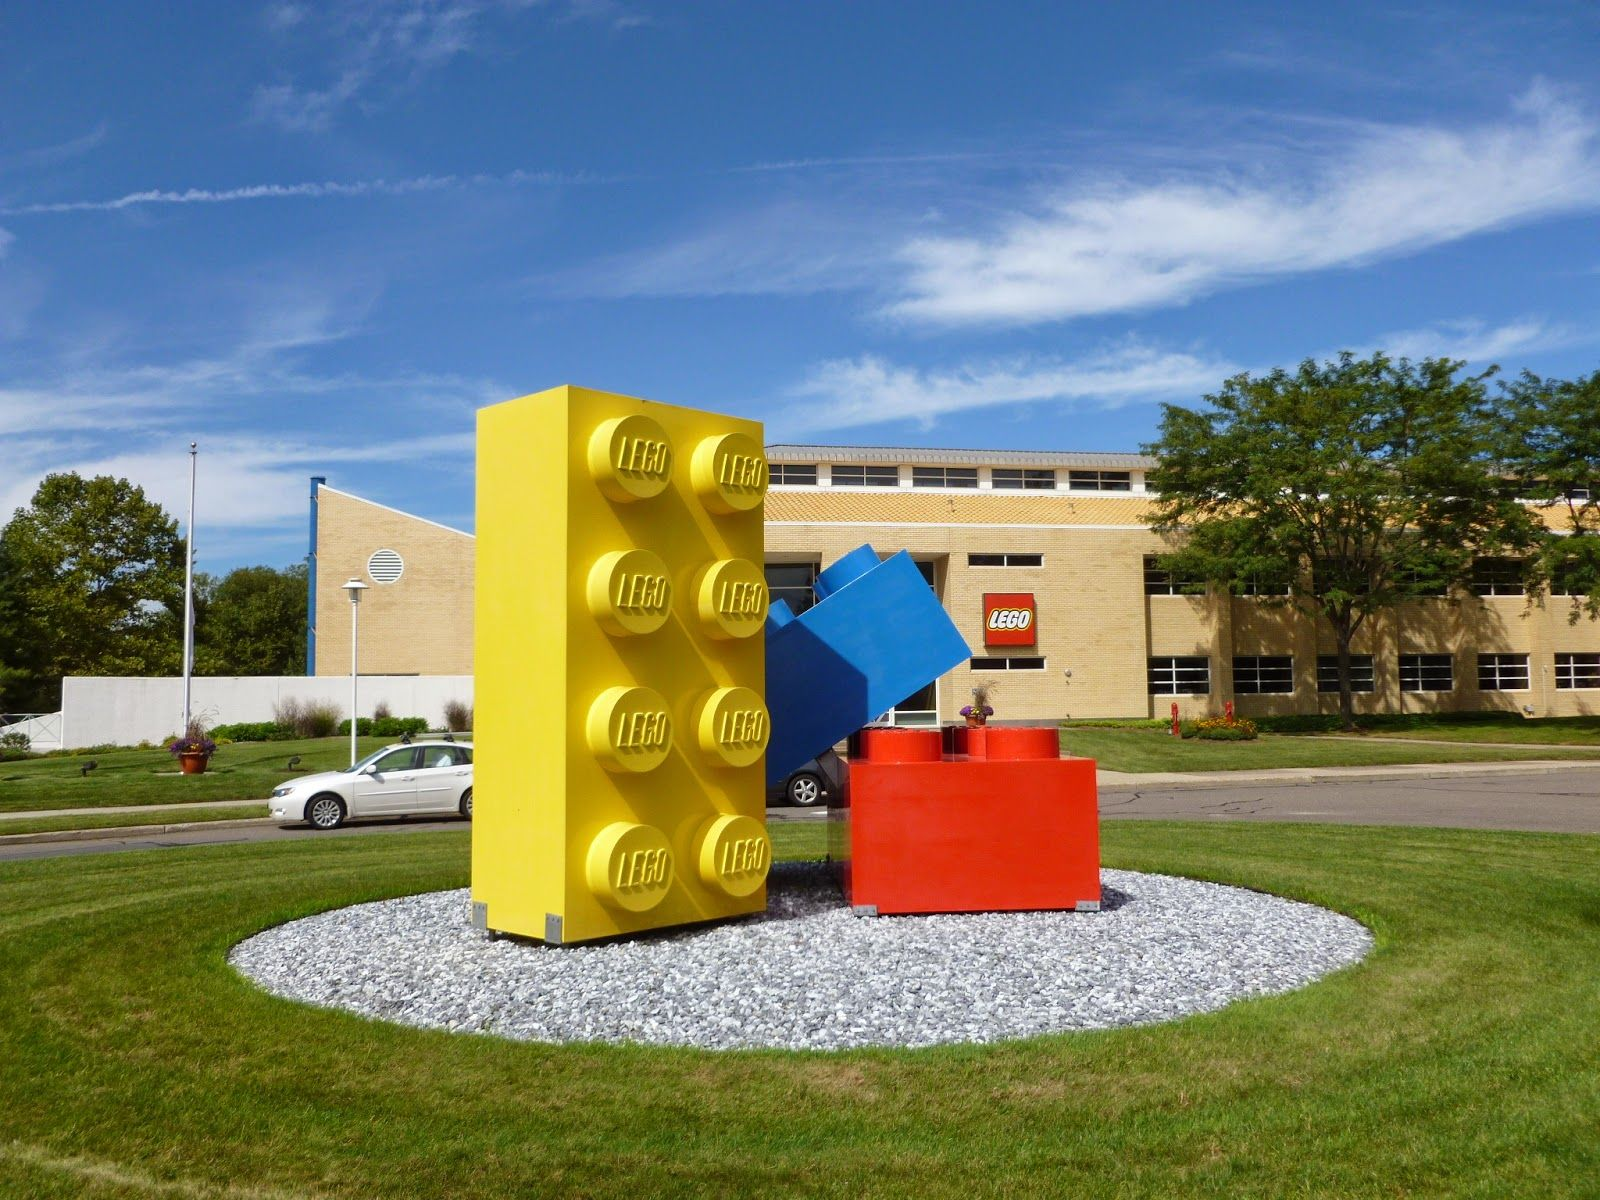 Photo Ops Roadside Attractions Giant Legos Enfield Ct Roadside Attractions Roadside Tourist Attraction